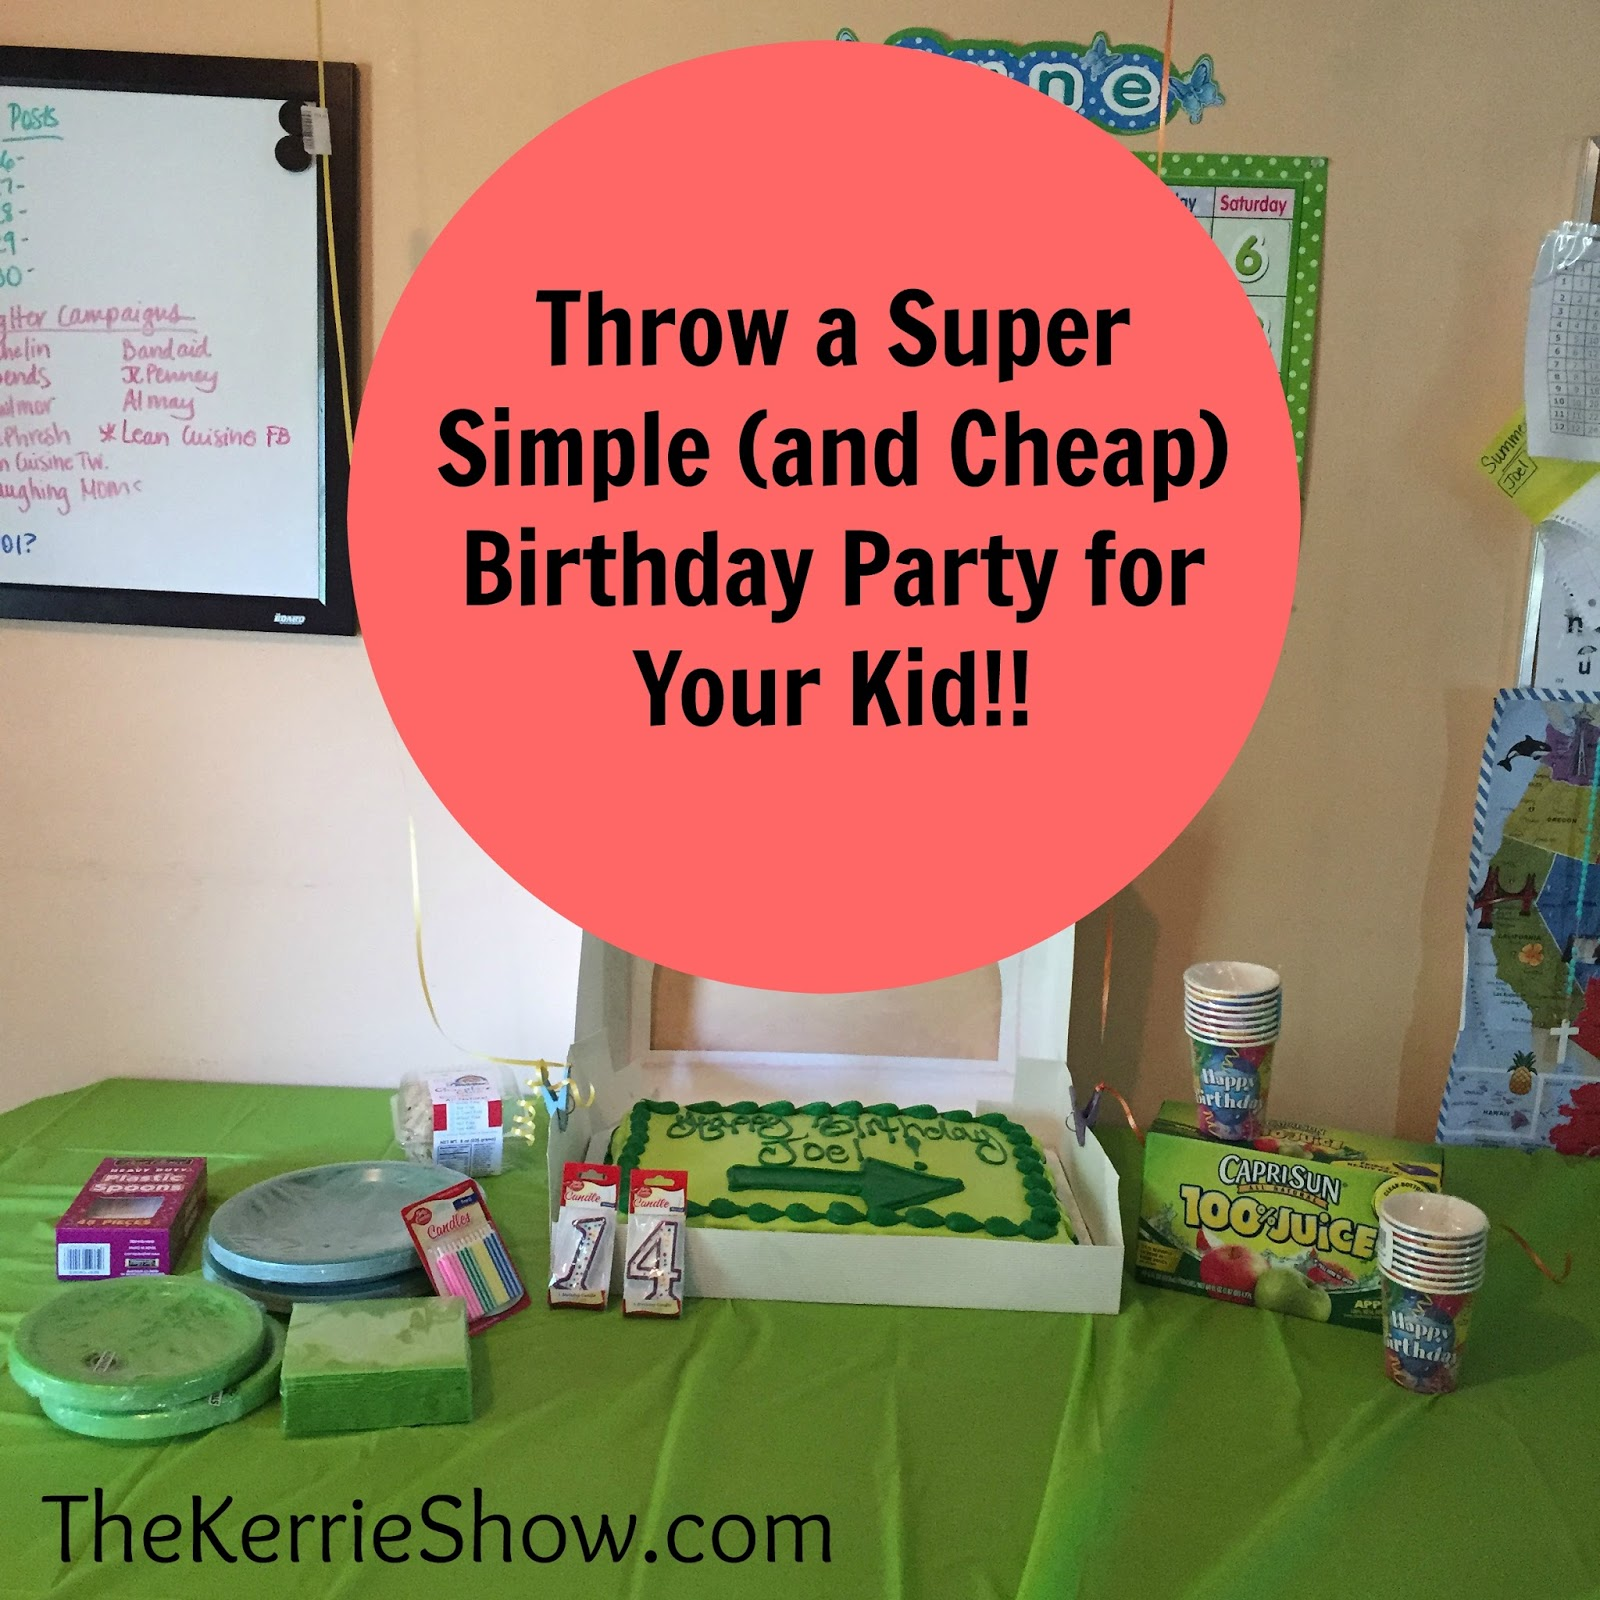 The Kerrie Show Throw a Super Simple and Cheap Birthday Party